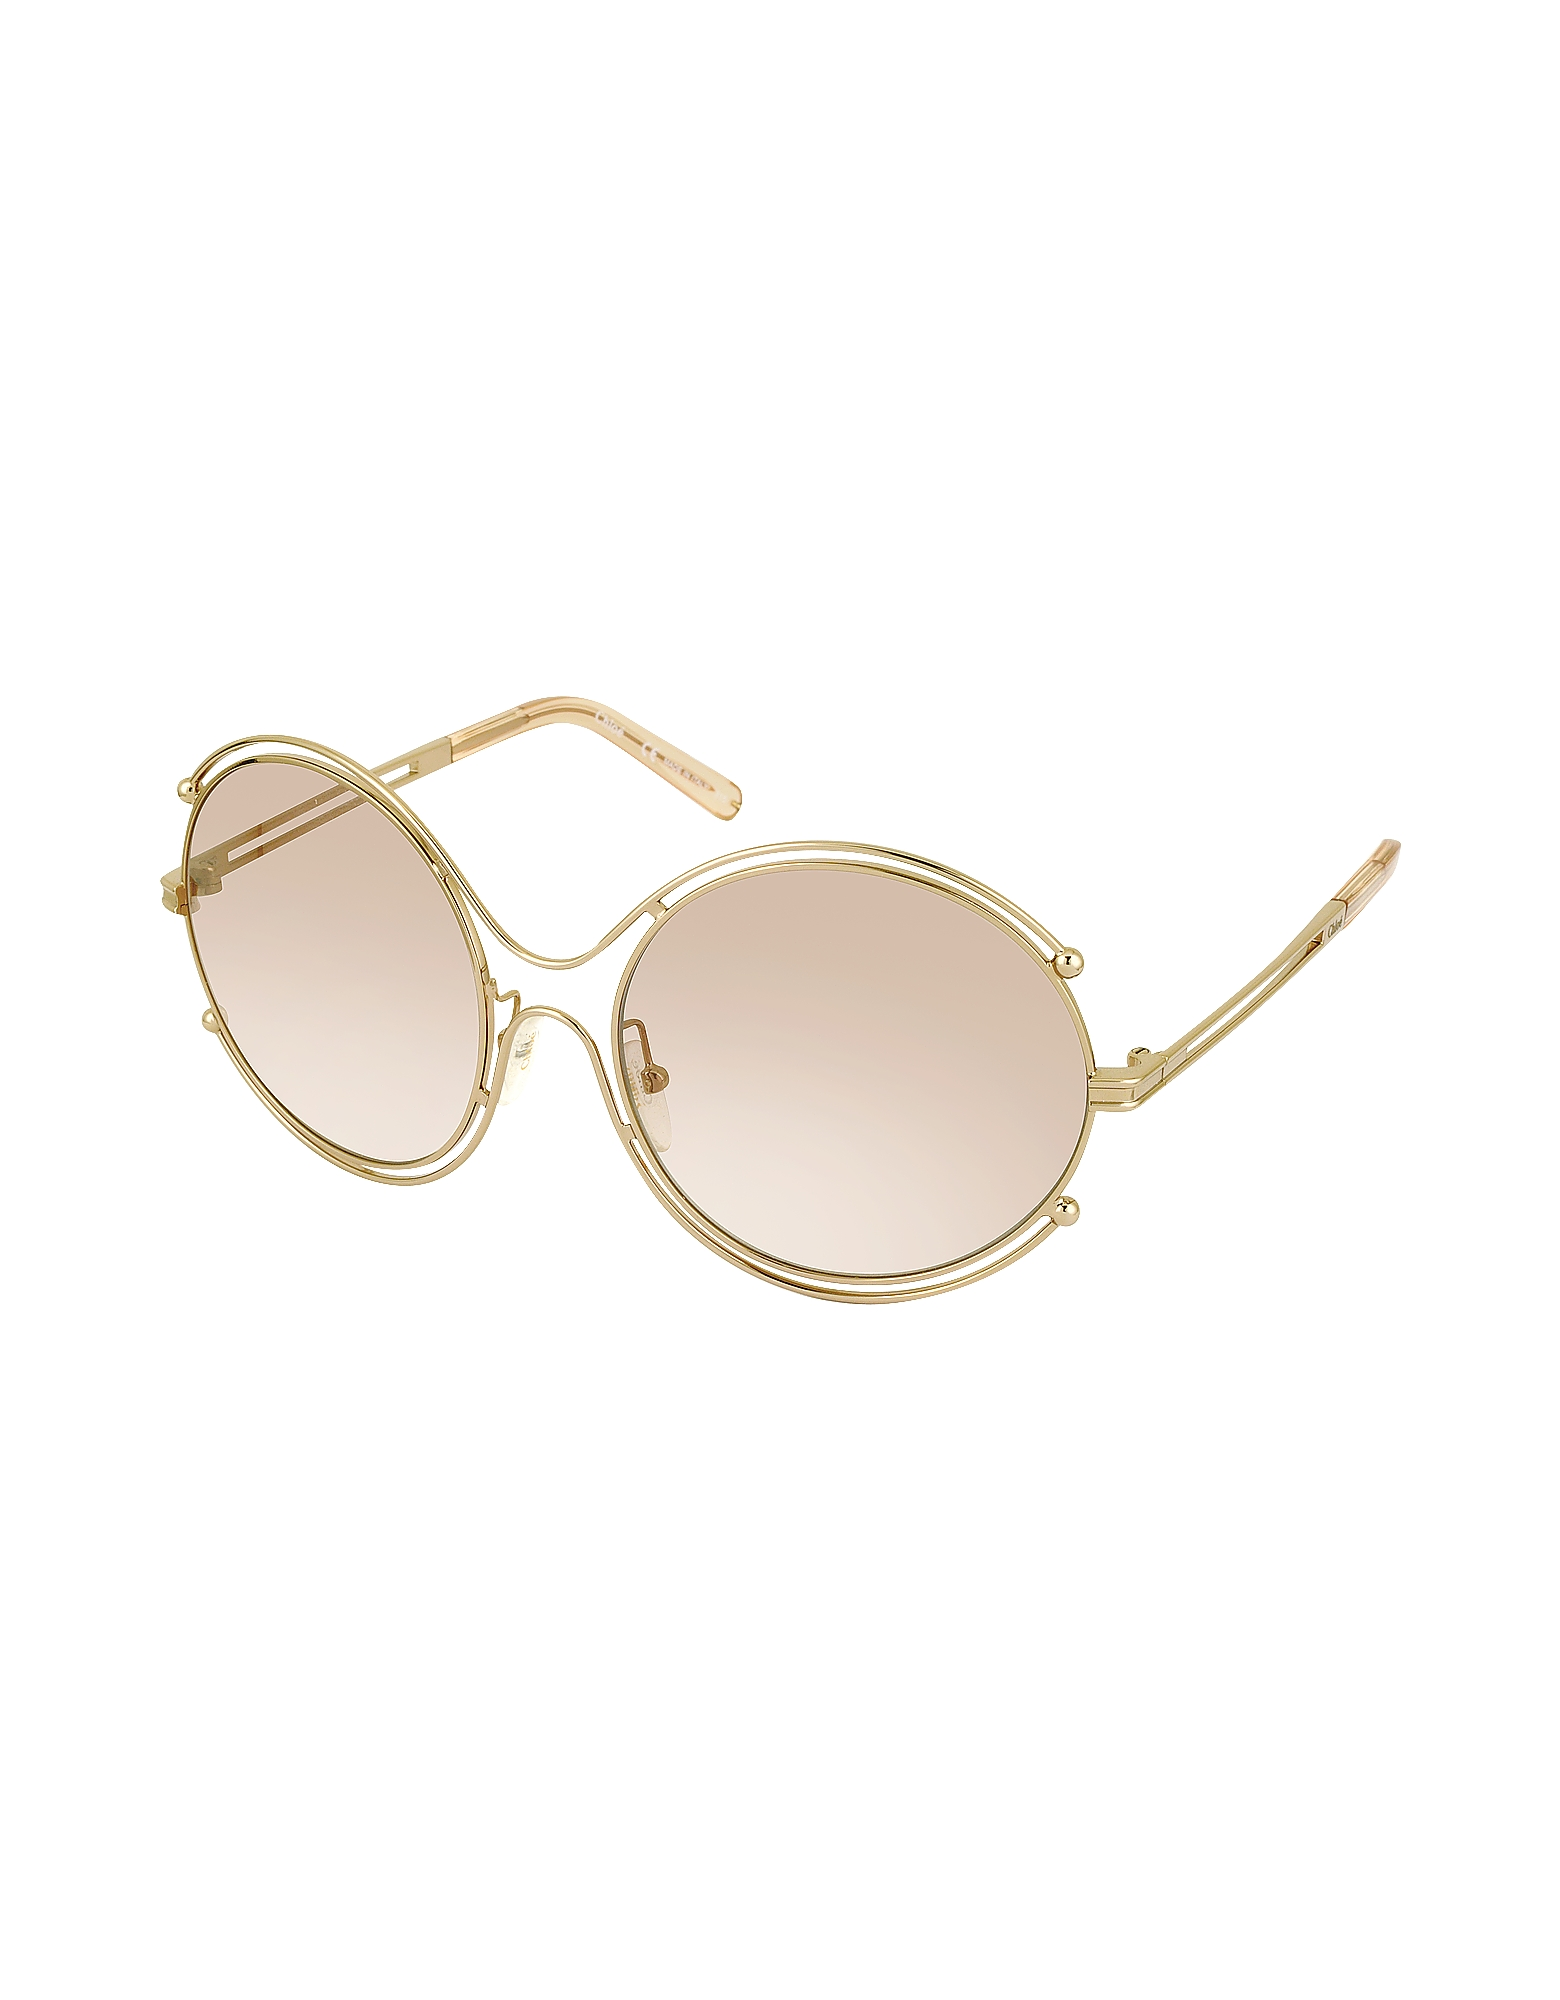 ISIDORA CE 122S Oval Oversized Metal Women's Sunglasses от Forzieri.com INT